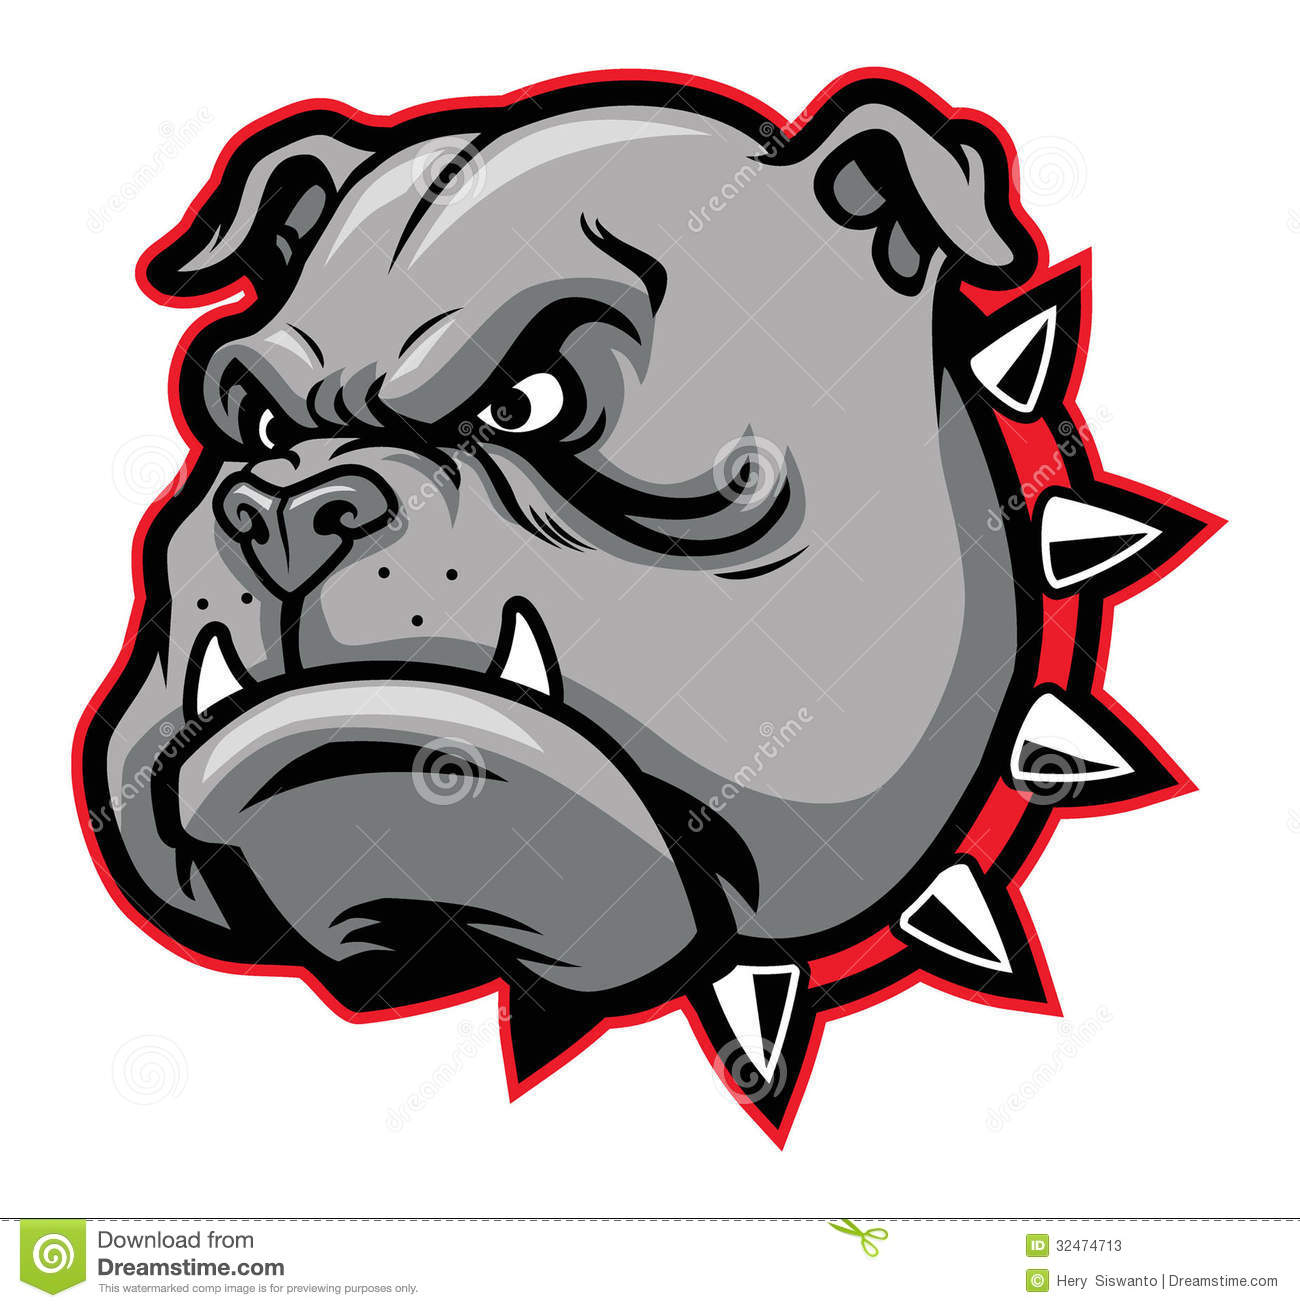 1300x1308 Bulldog Football Mascot Clipart Panda